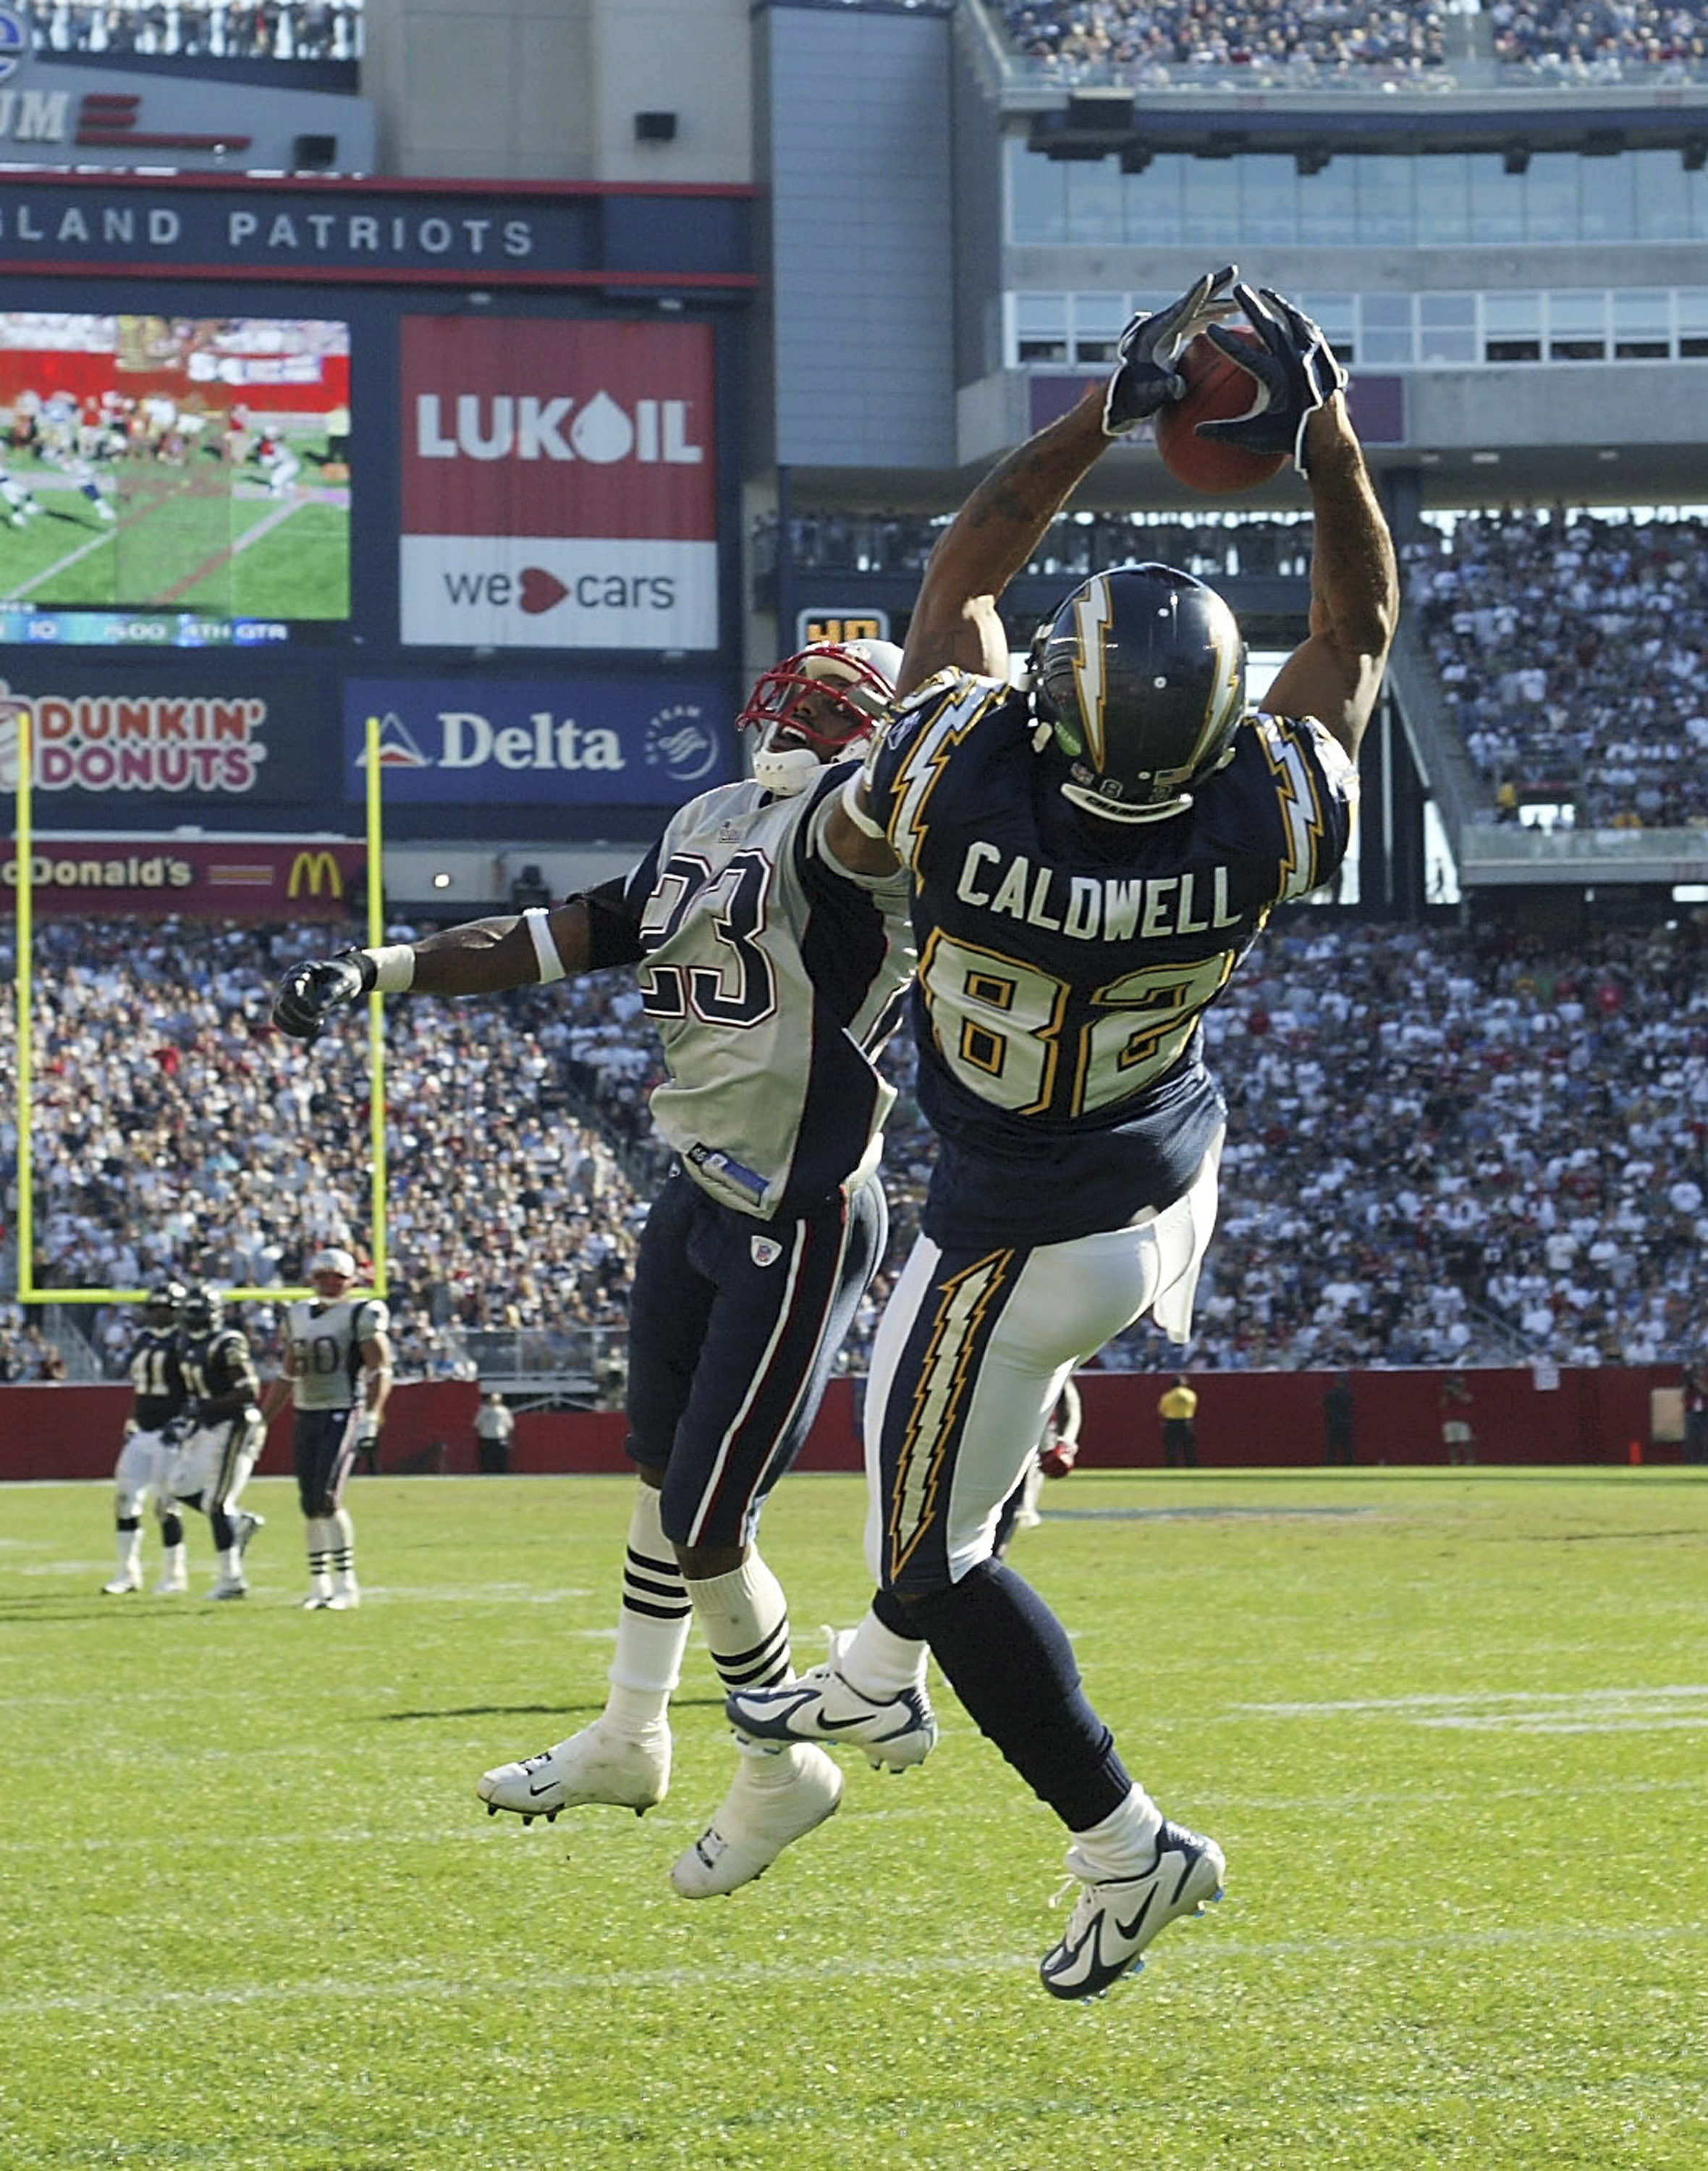 FOXBORO, MA - OCTOBER 2:  Wide receiver Reche Caldwell #82 of the San Diego Chargers catches a 28-yard touchdown pass against cornerback Duane Starks #23 of the New England Patriots in the third quarter on October 2, 2005 at Gillette Stadium in Foxboro, M